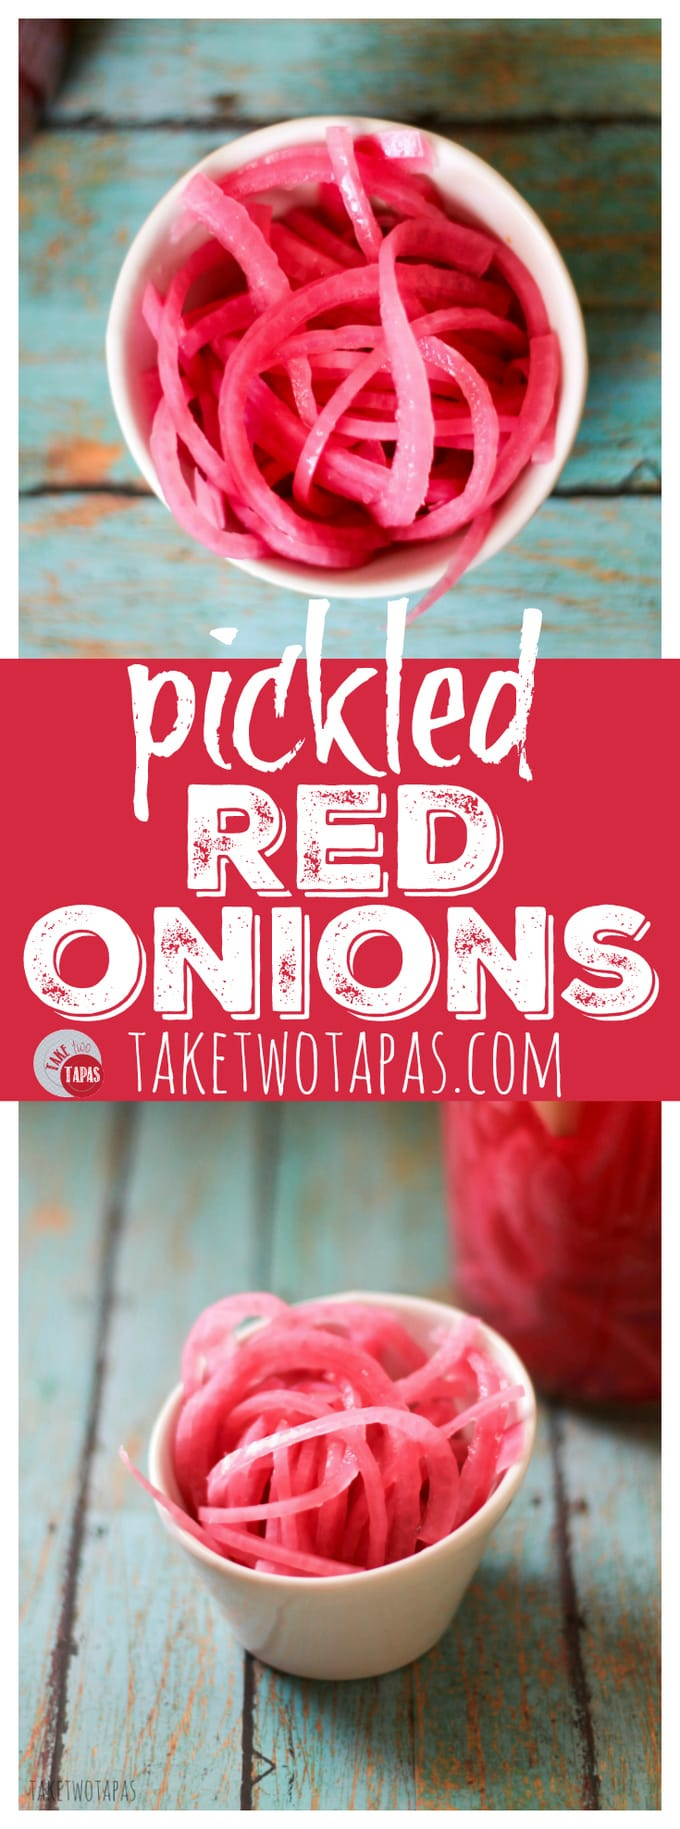 Pickled Red Onions from Take Two Tapas | #Pickled #RedOnion #Onion #BBQ #Condiment